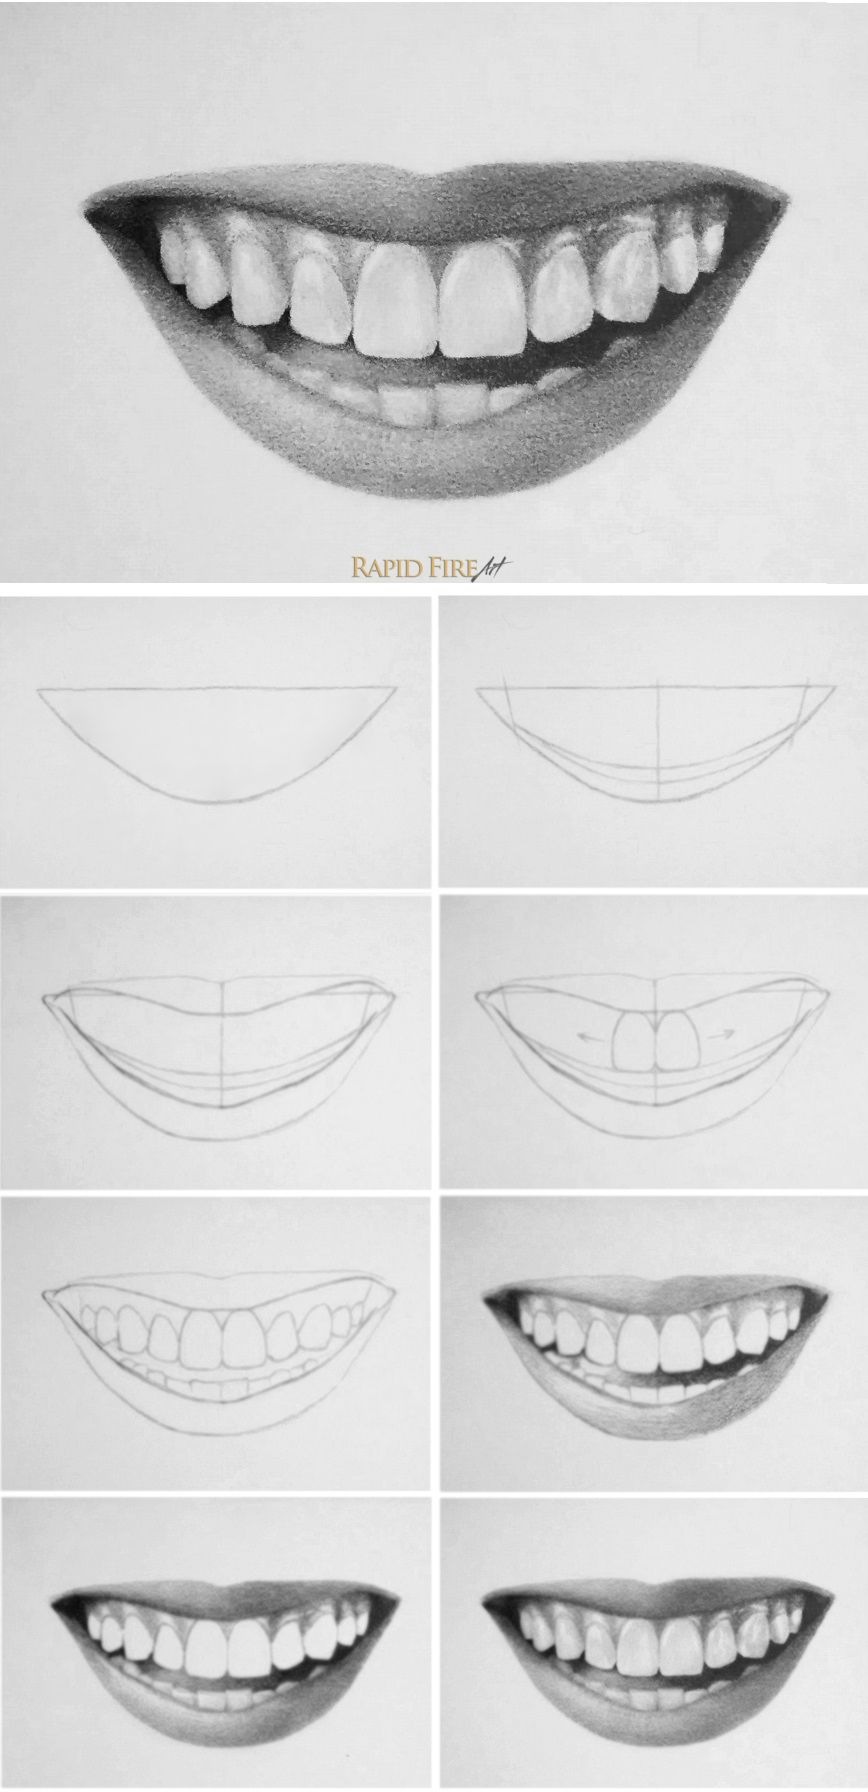 How To Draw Teeth And Lips 7 Easy Steps Teeth Drawing Smile Drawing Mouth Drawing